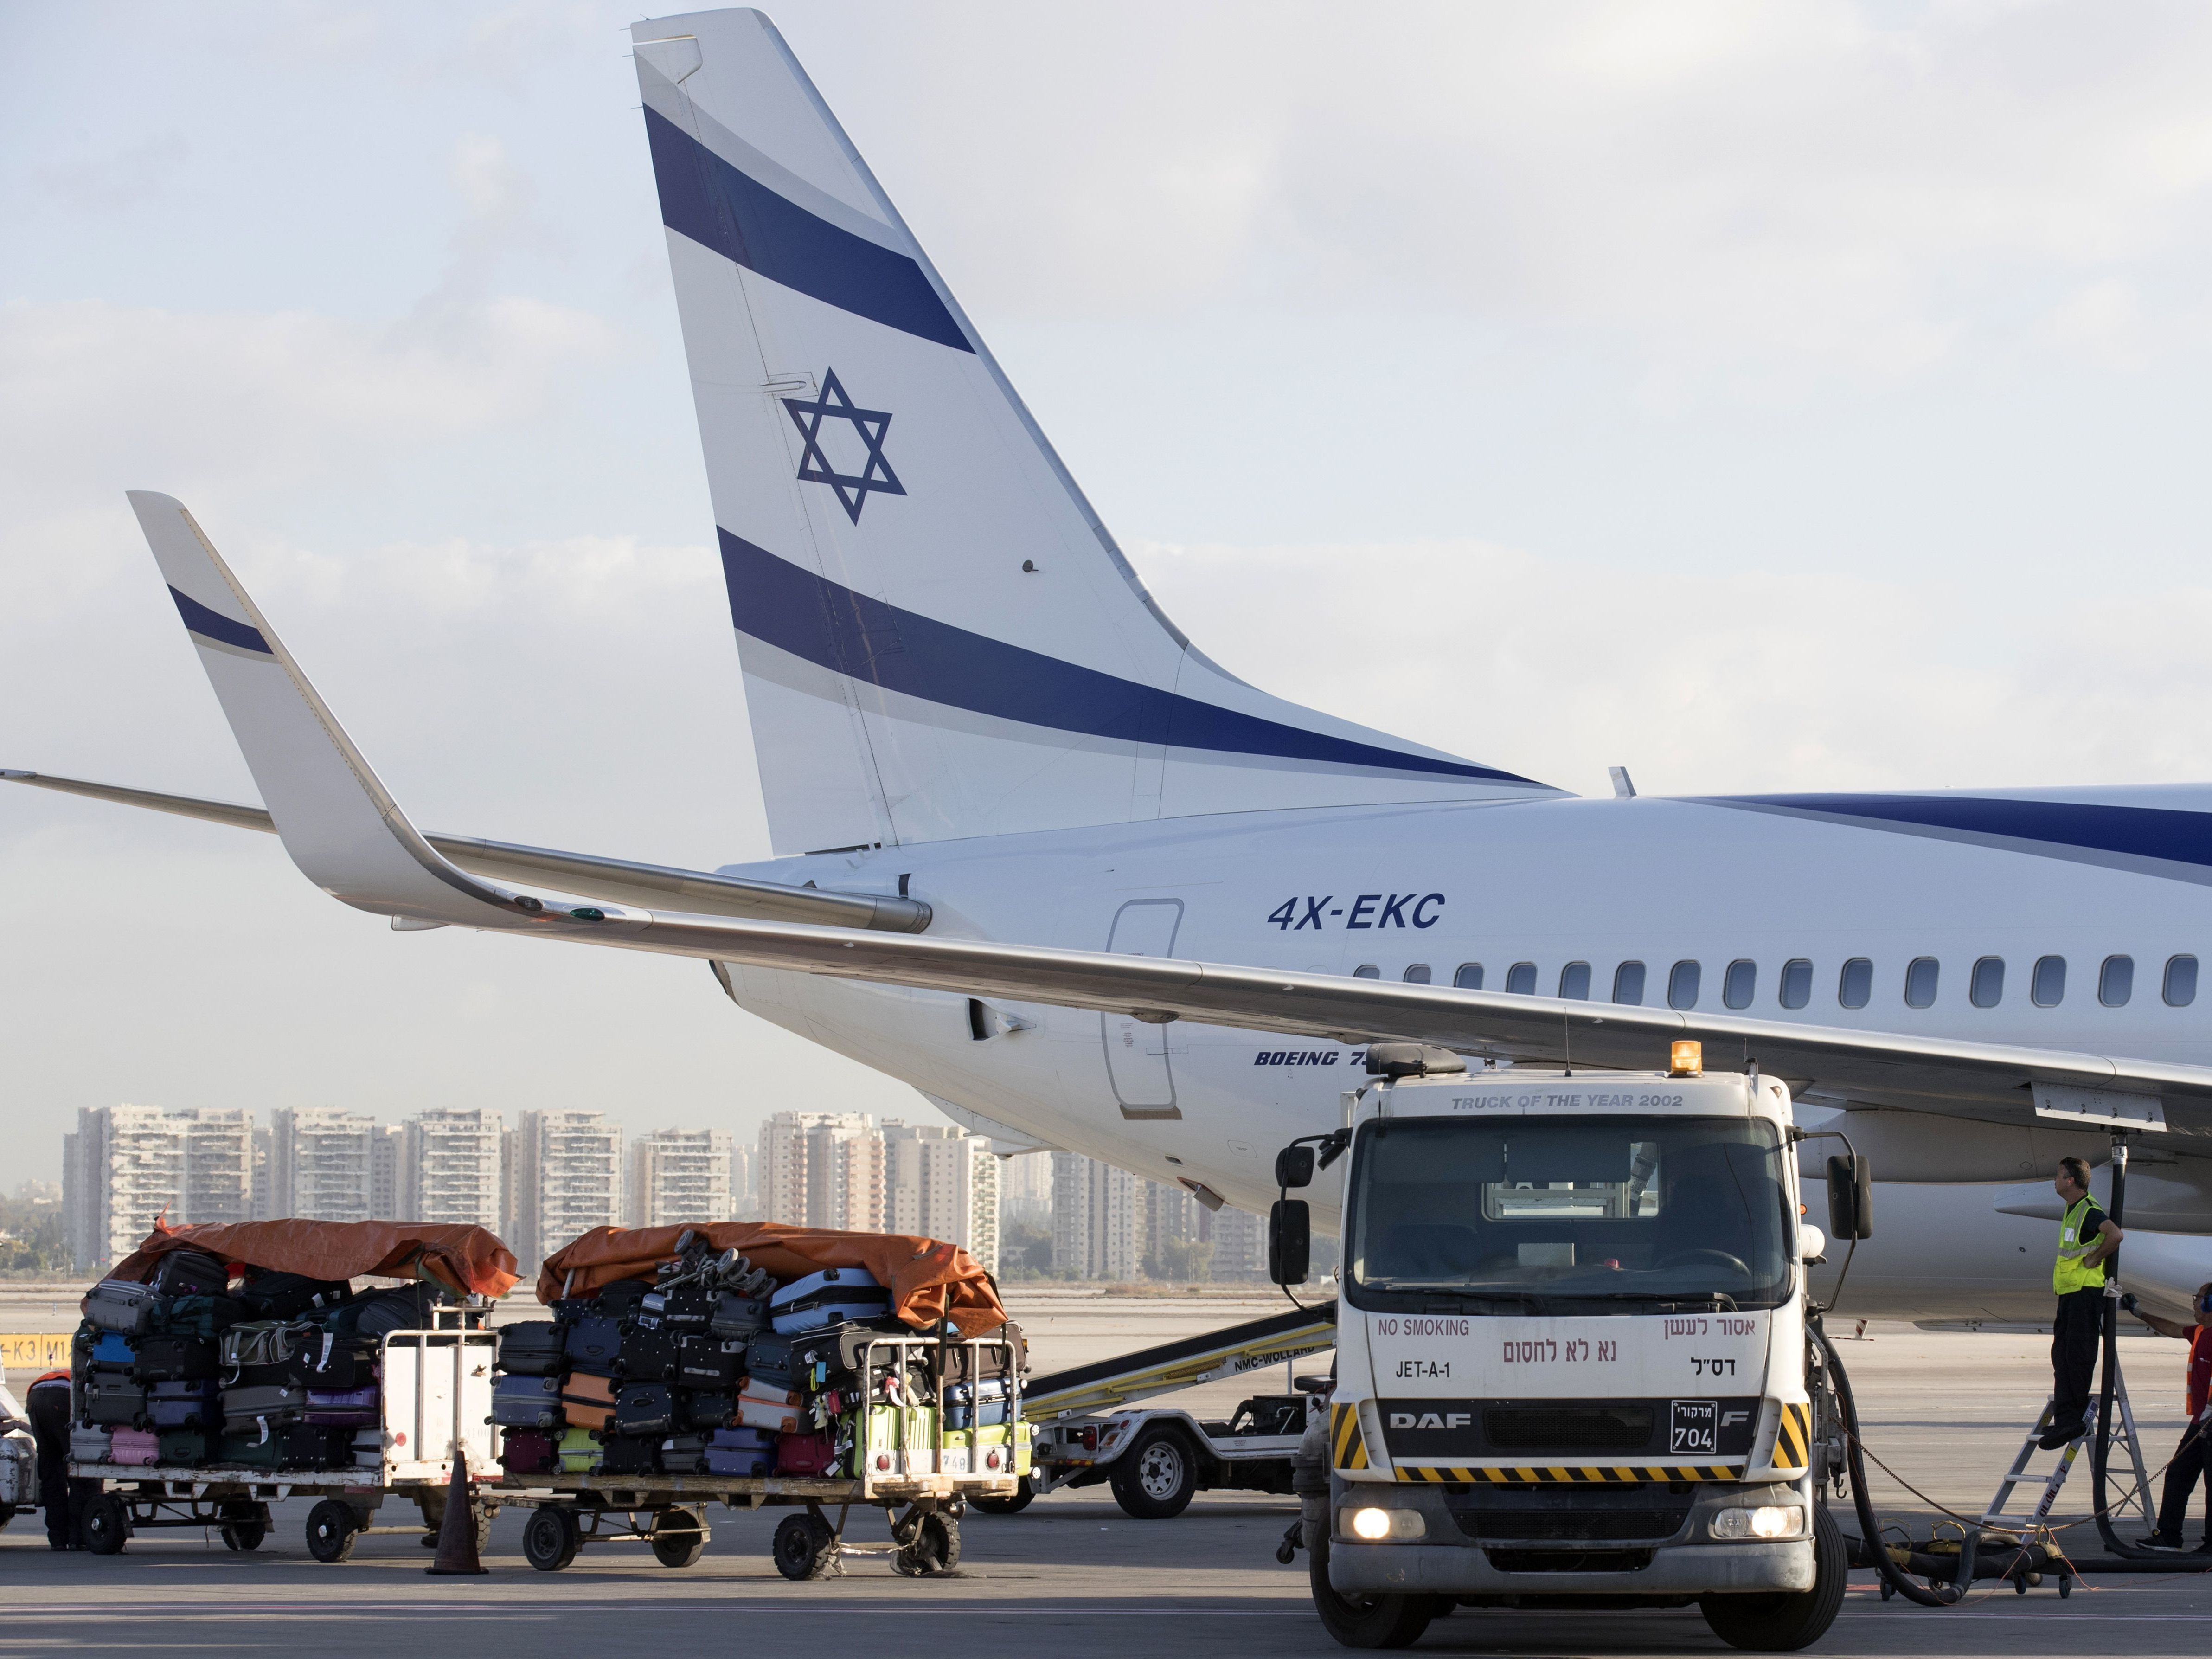 Court orders Israeli airline to cancel gender bias policy